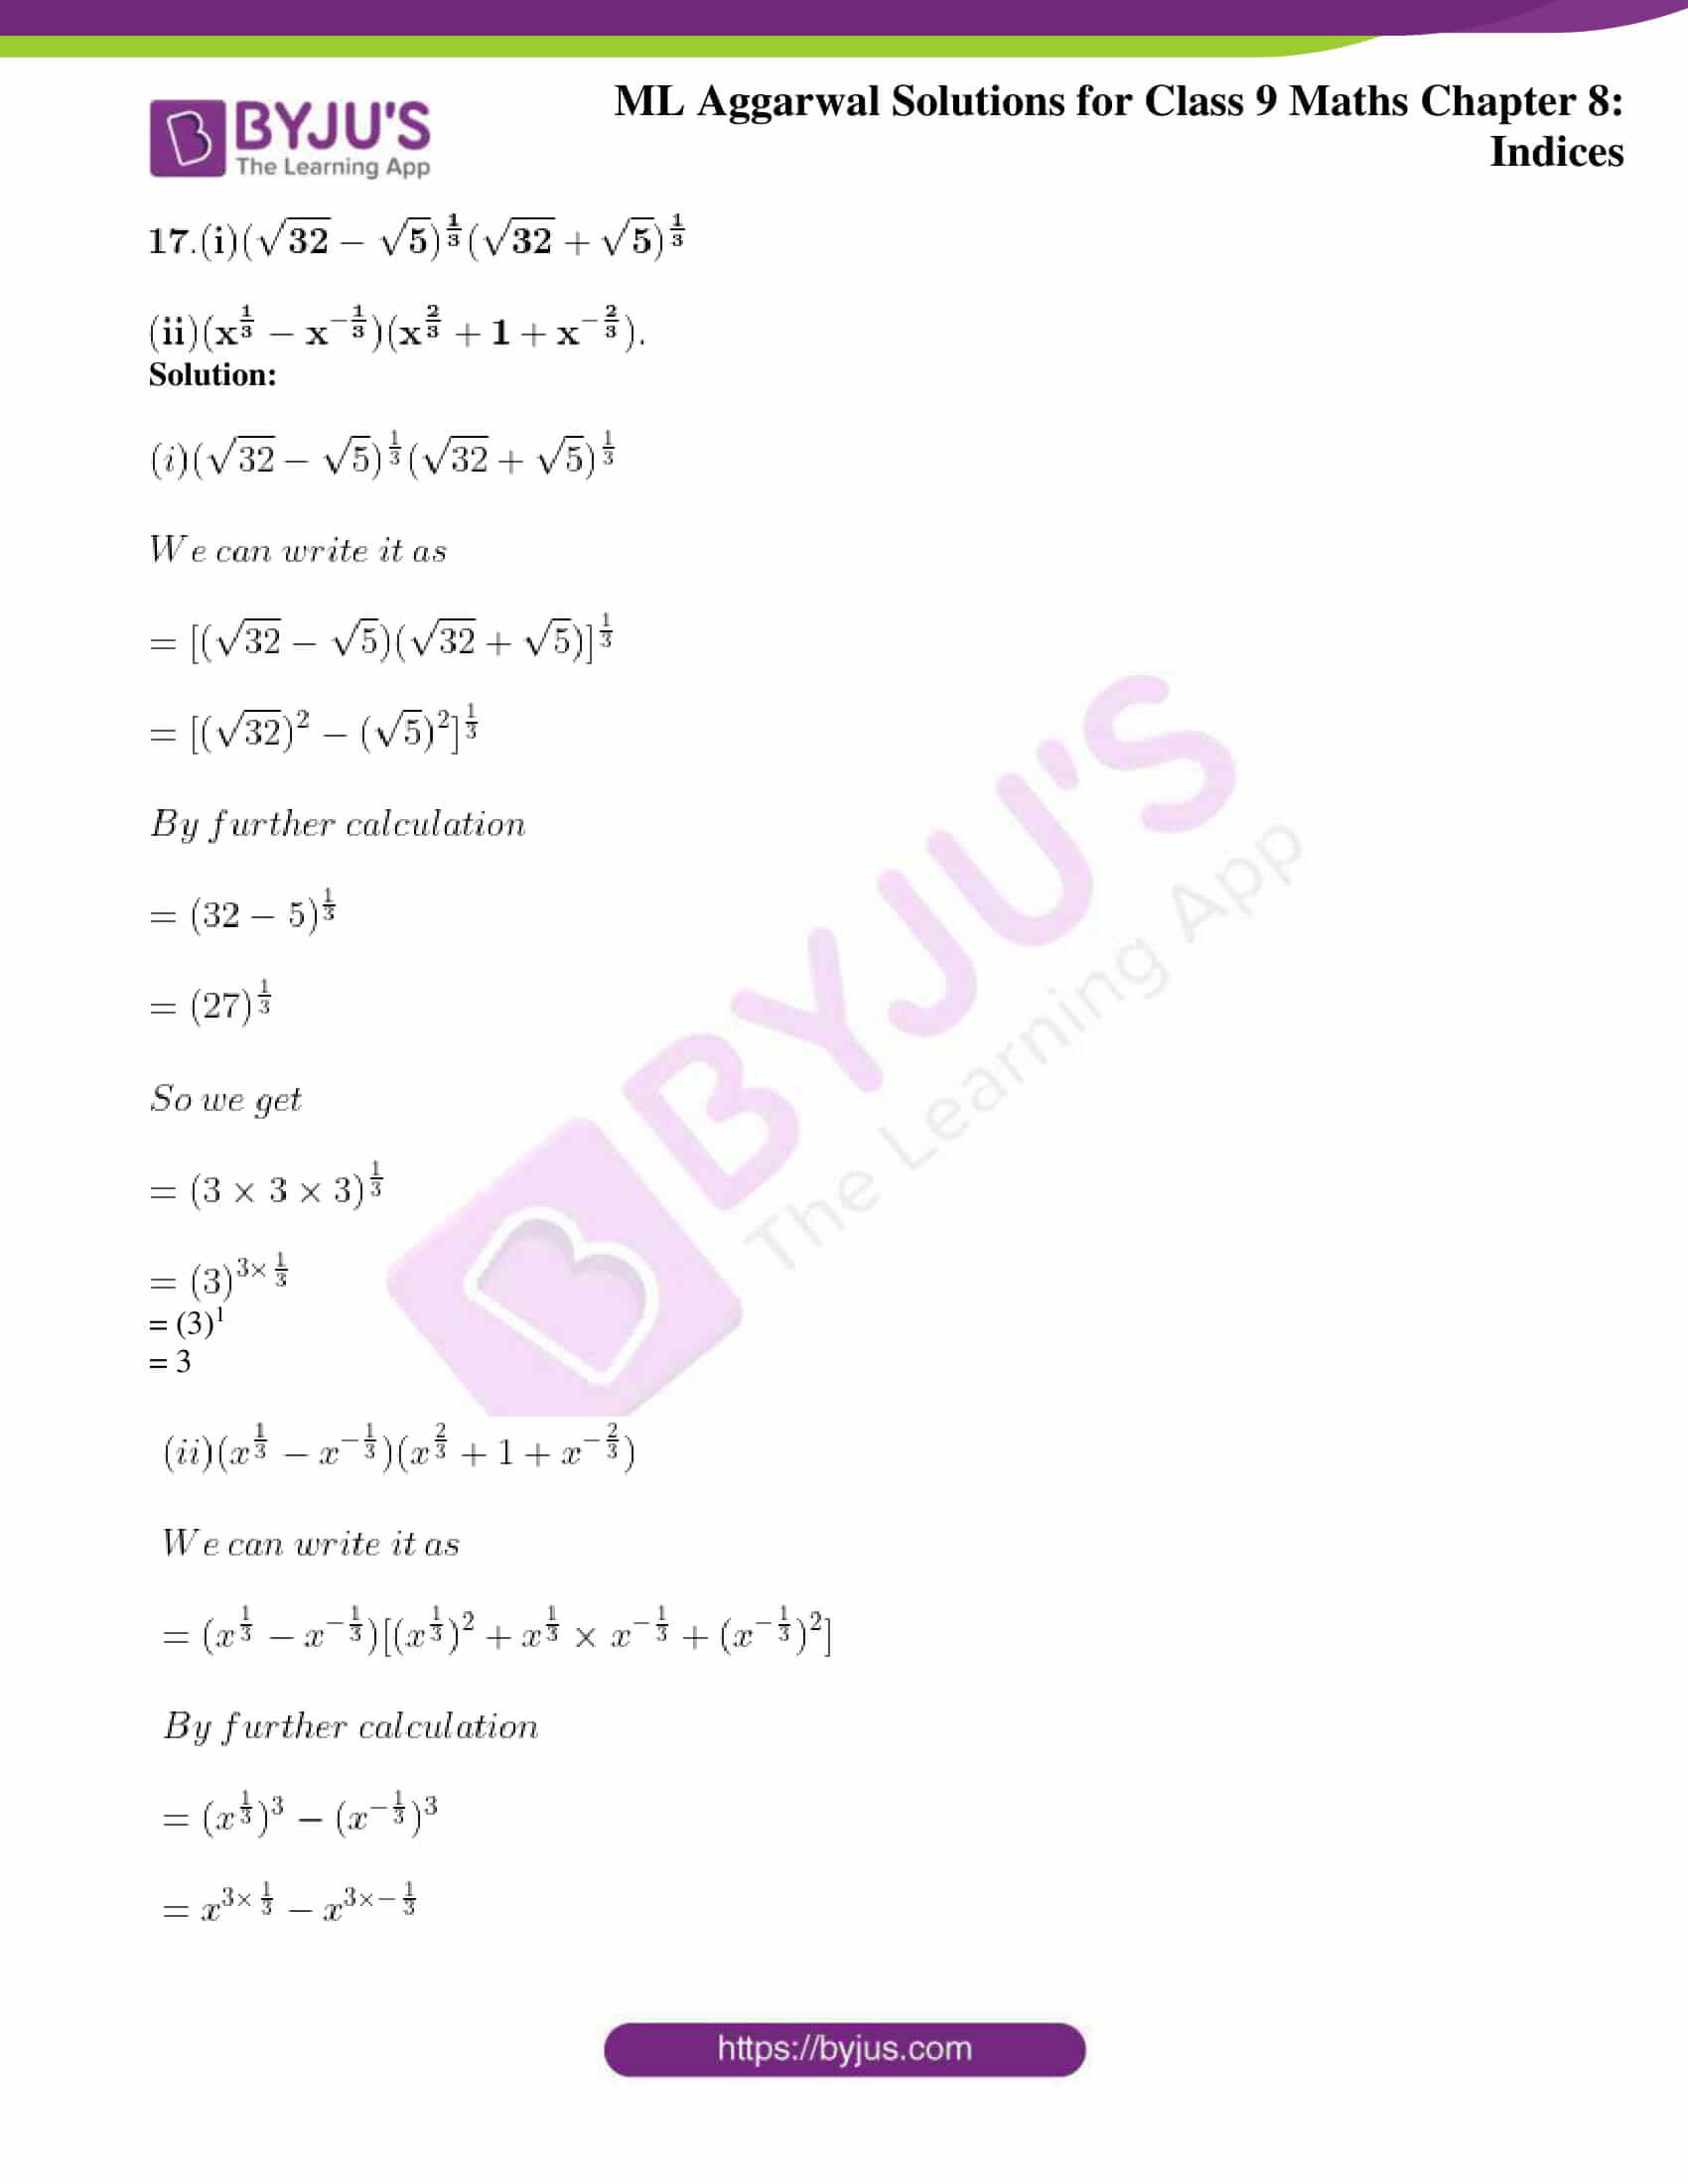 ml aggarwal solutions for class 9 maths chapter 8 19